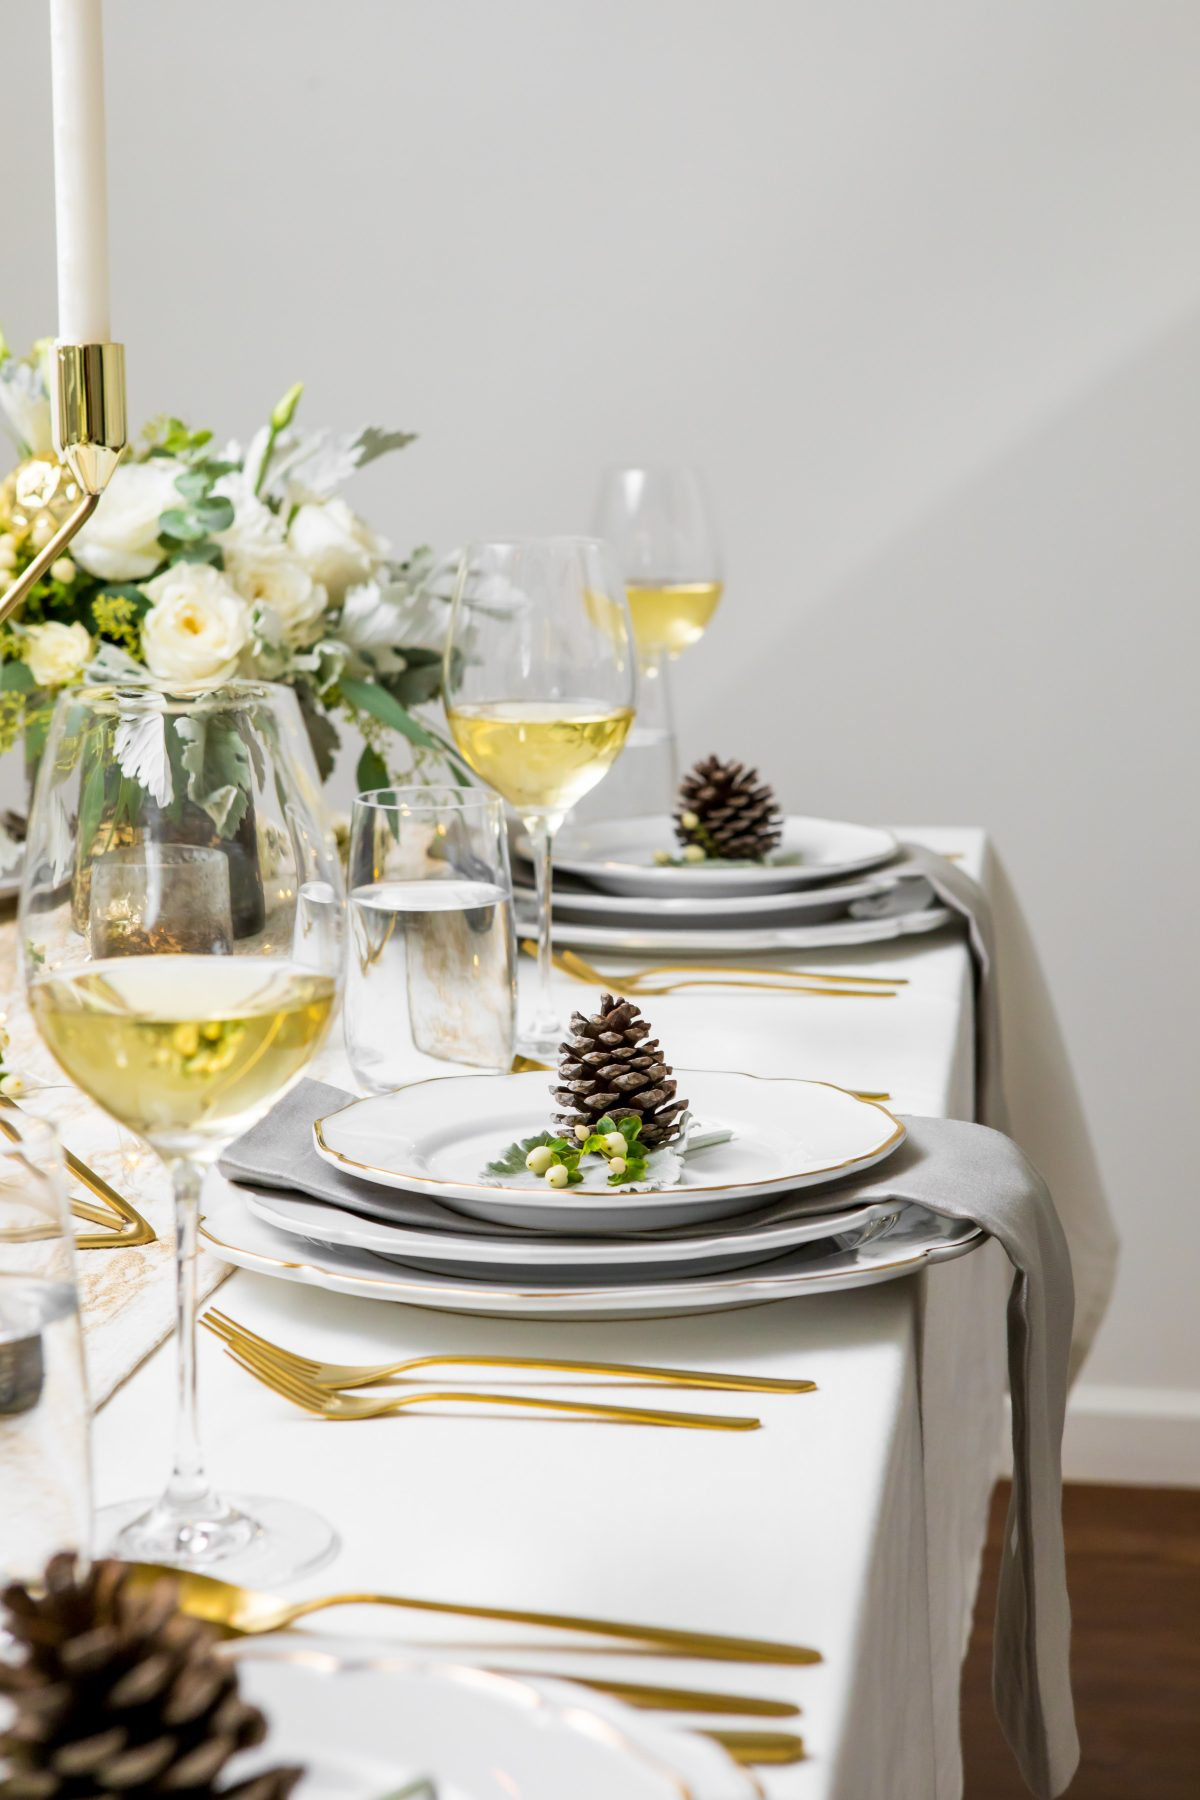 5D4B3936 - Tablescapes - Christmas-layer-linens-salad-plate